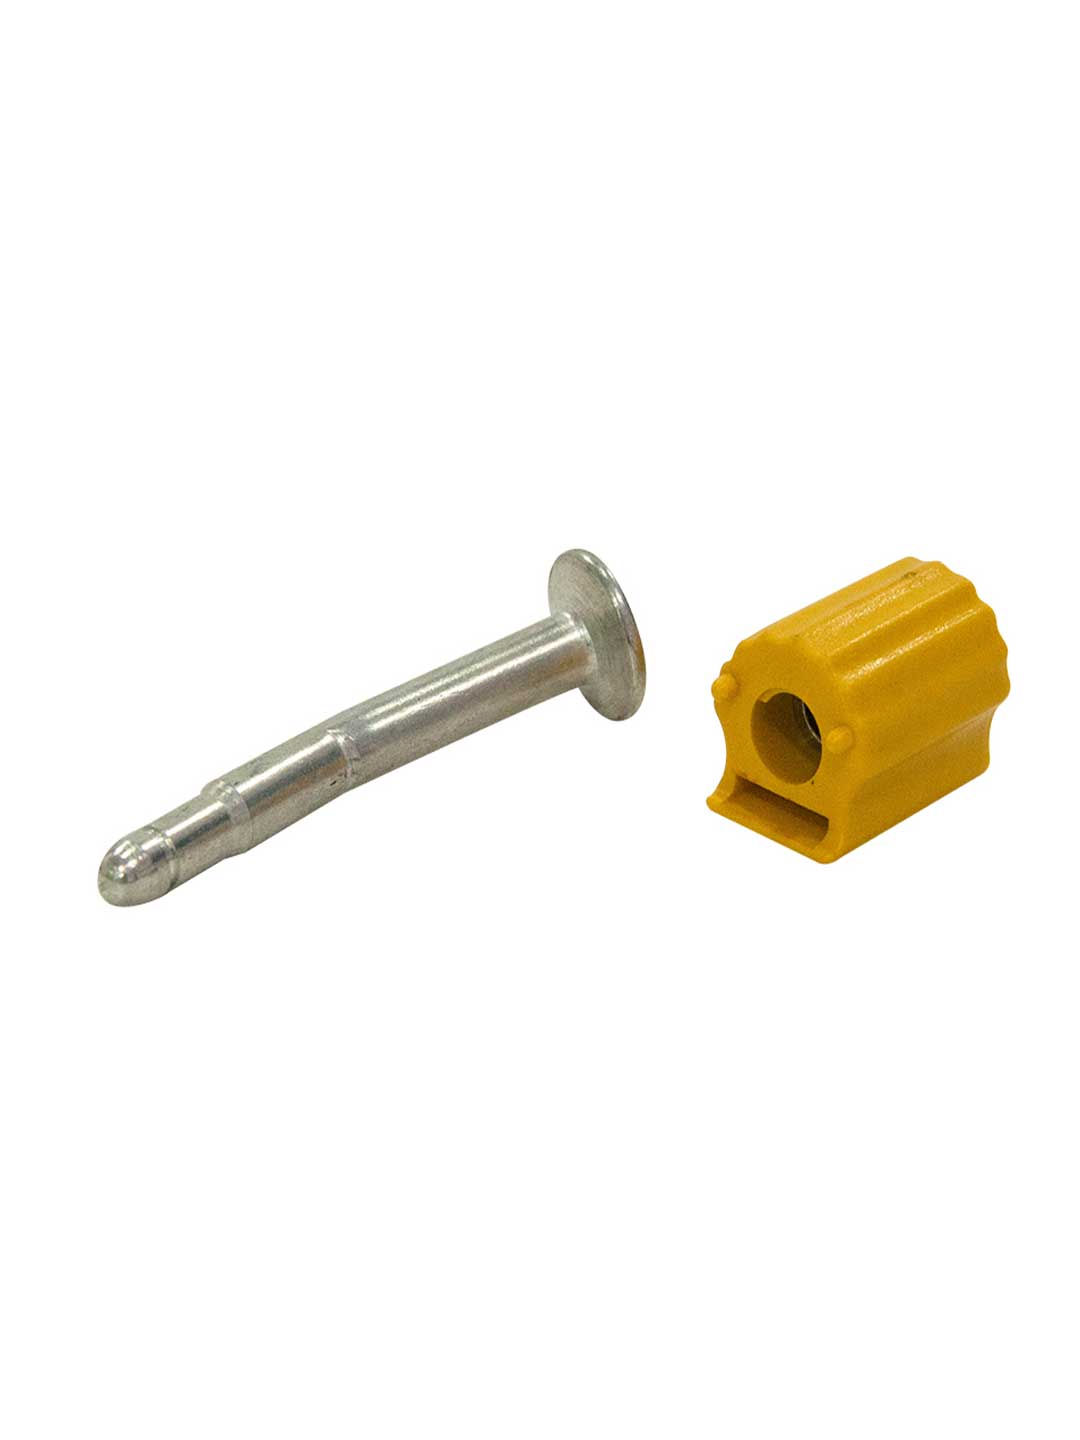 Container Bolt Seal | High Security Bolt Seal